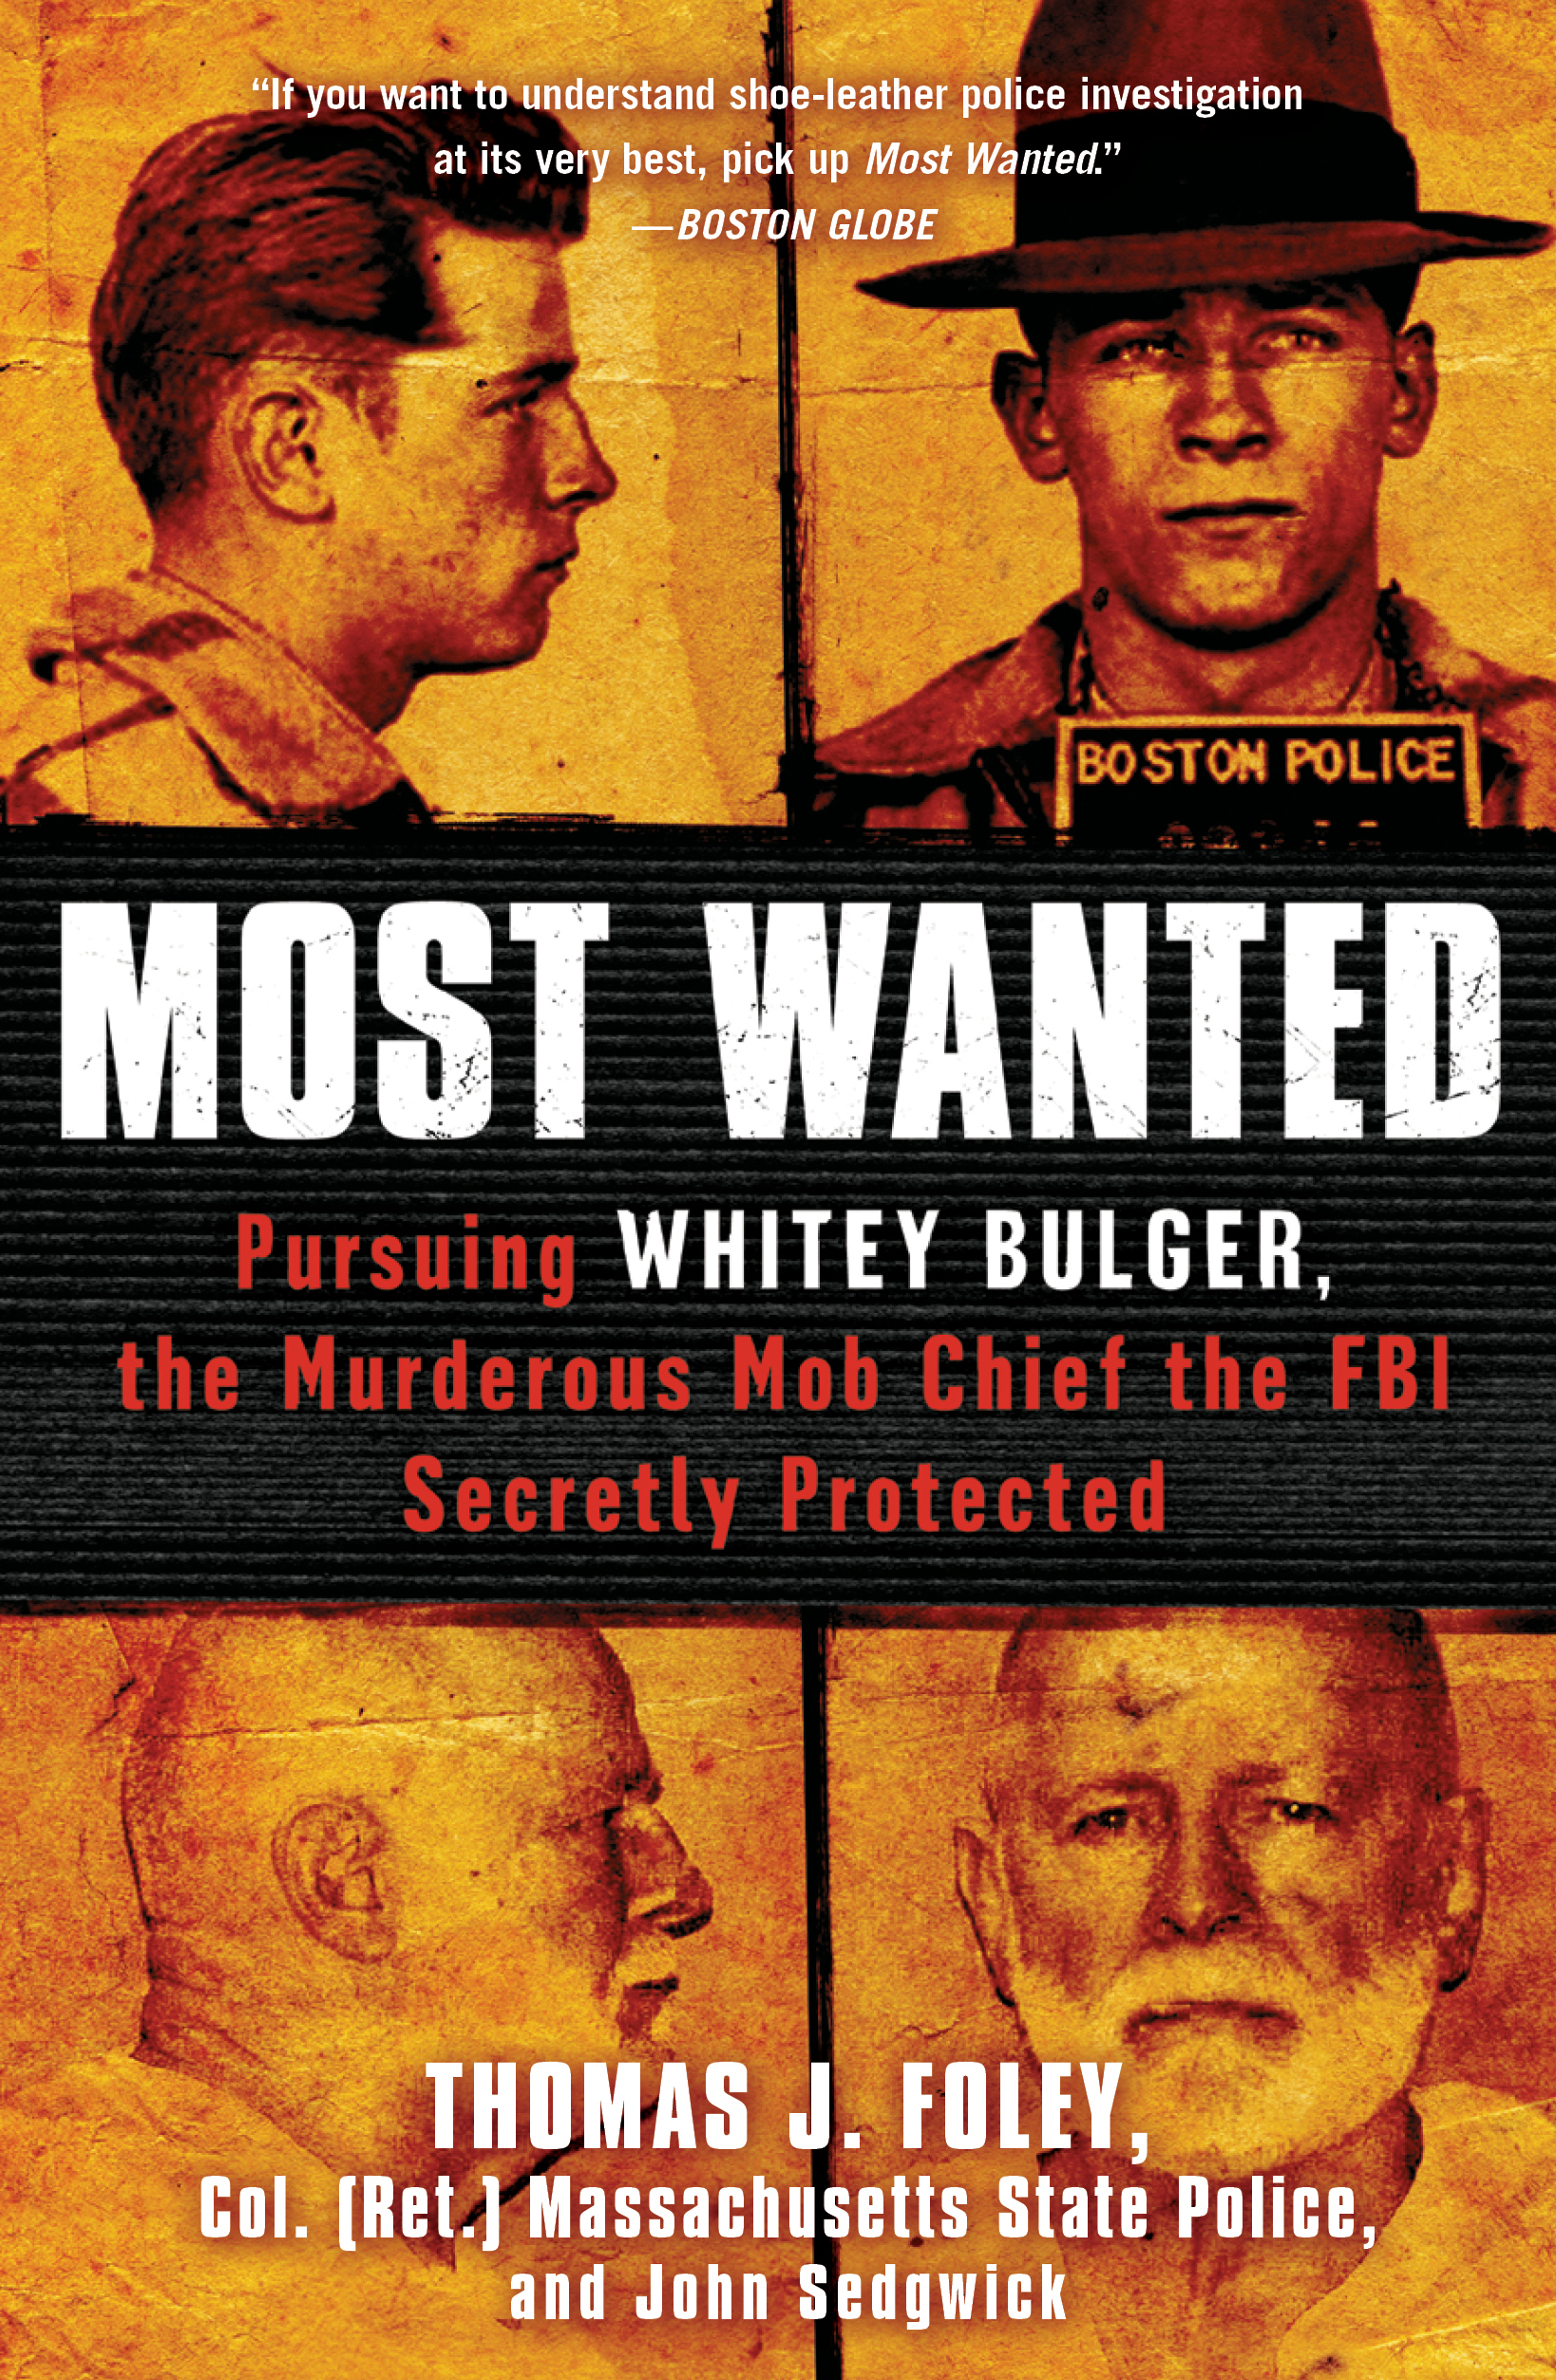 the twenty year pursuit of the murderous boston gangster whitey bulger in most wanted a book by thom J foley with rakuten kobo thomas j foley's twenty-year pursuit of murderous boston whitey bulger: america's most wanted gangster and the.